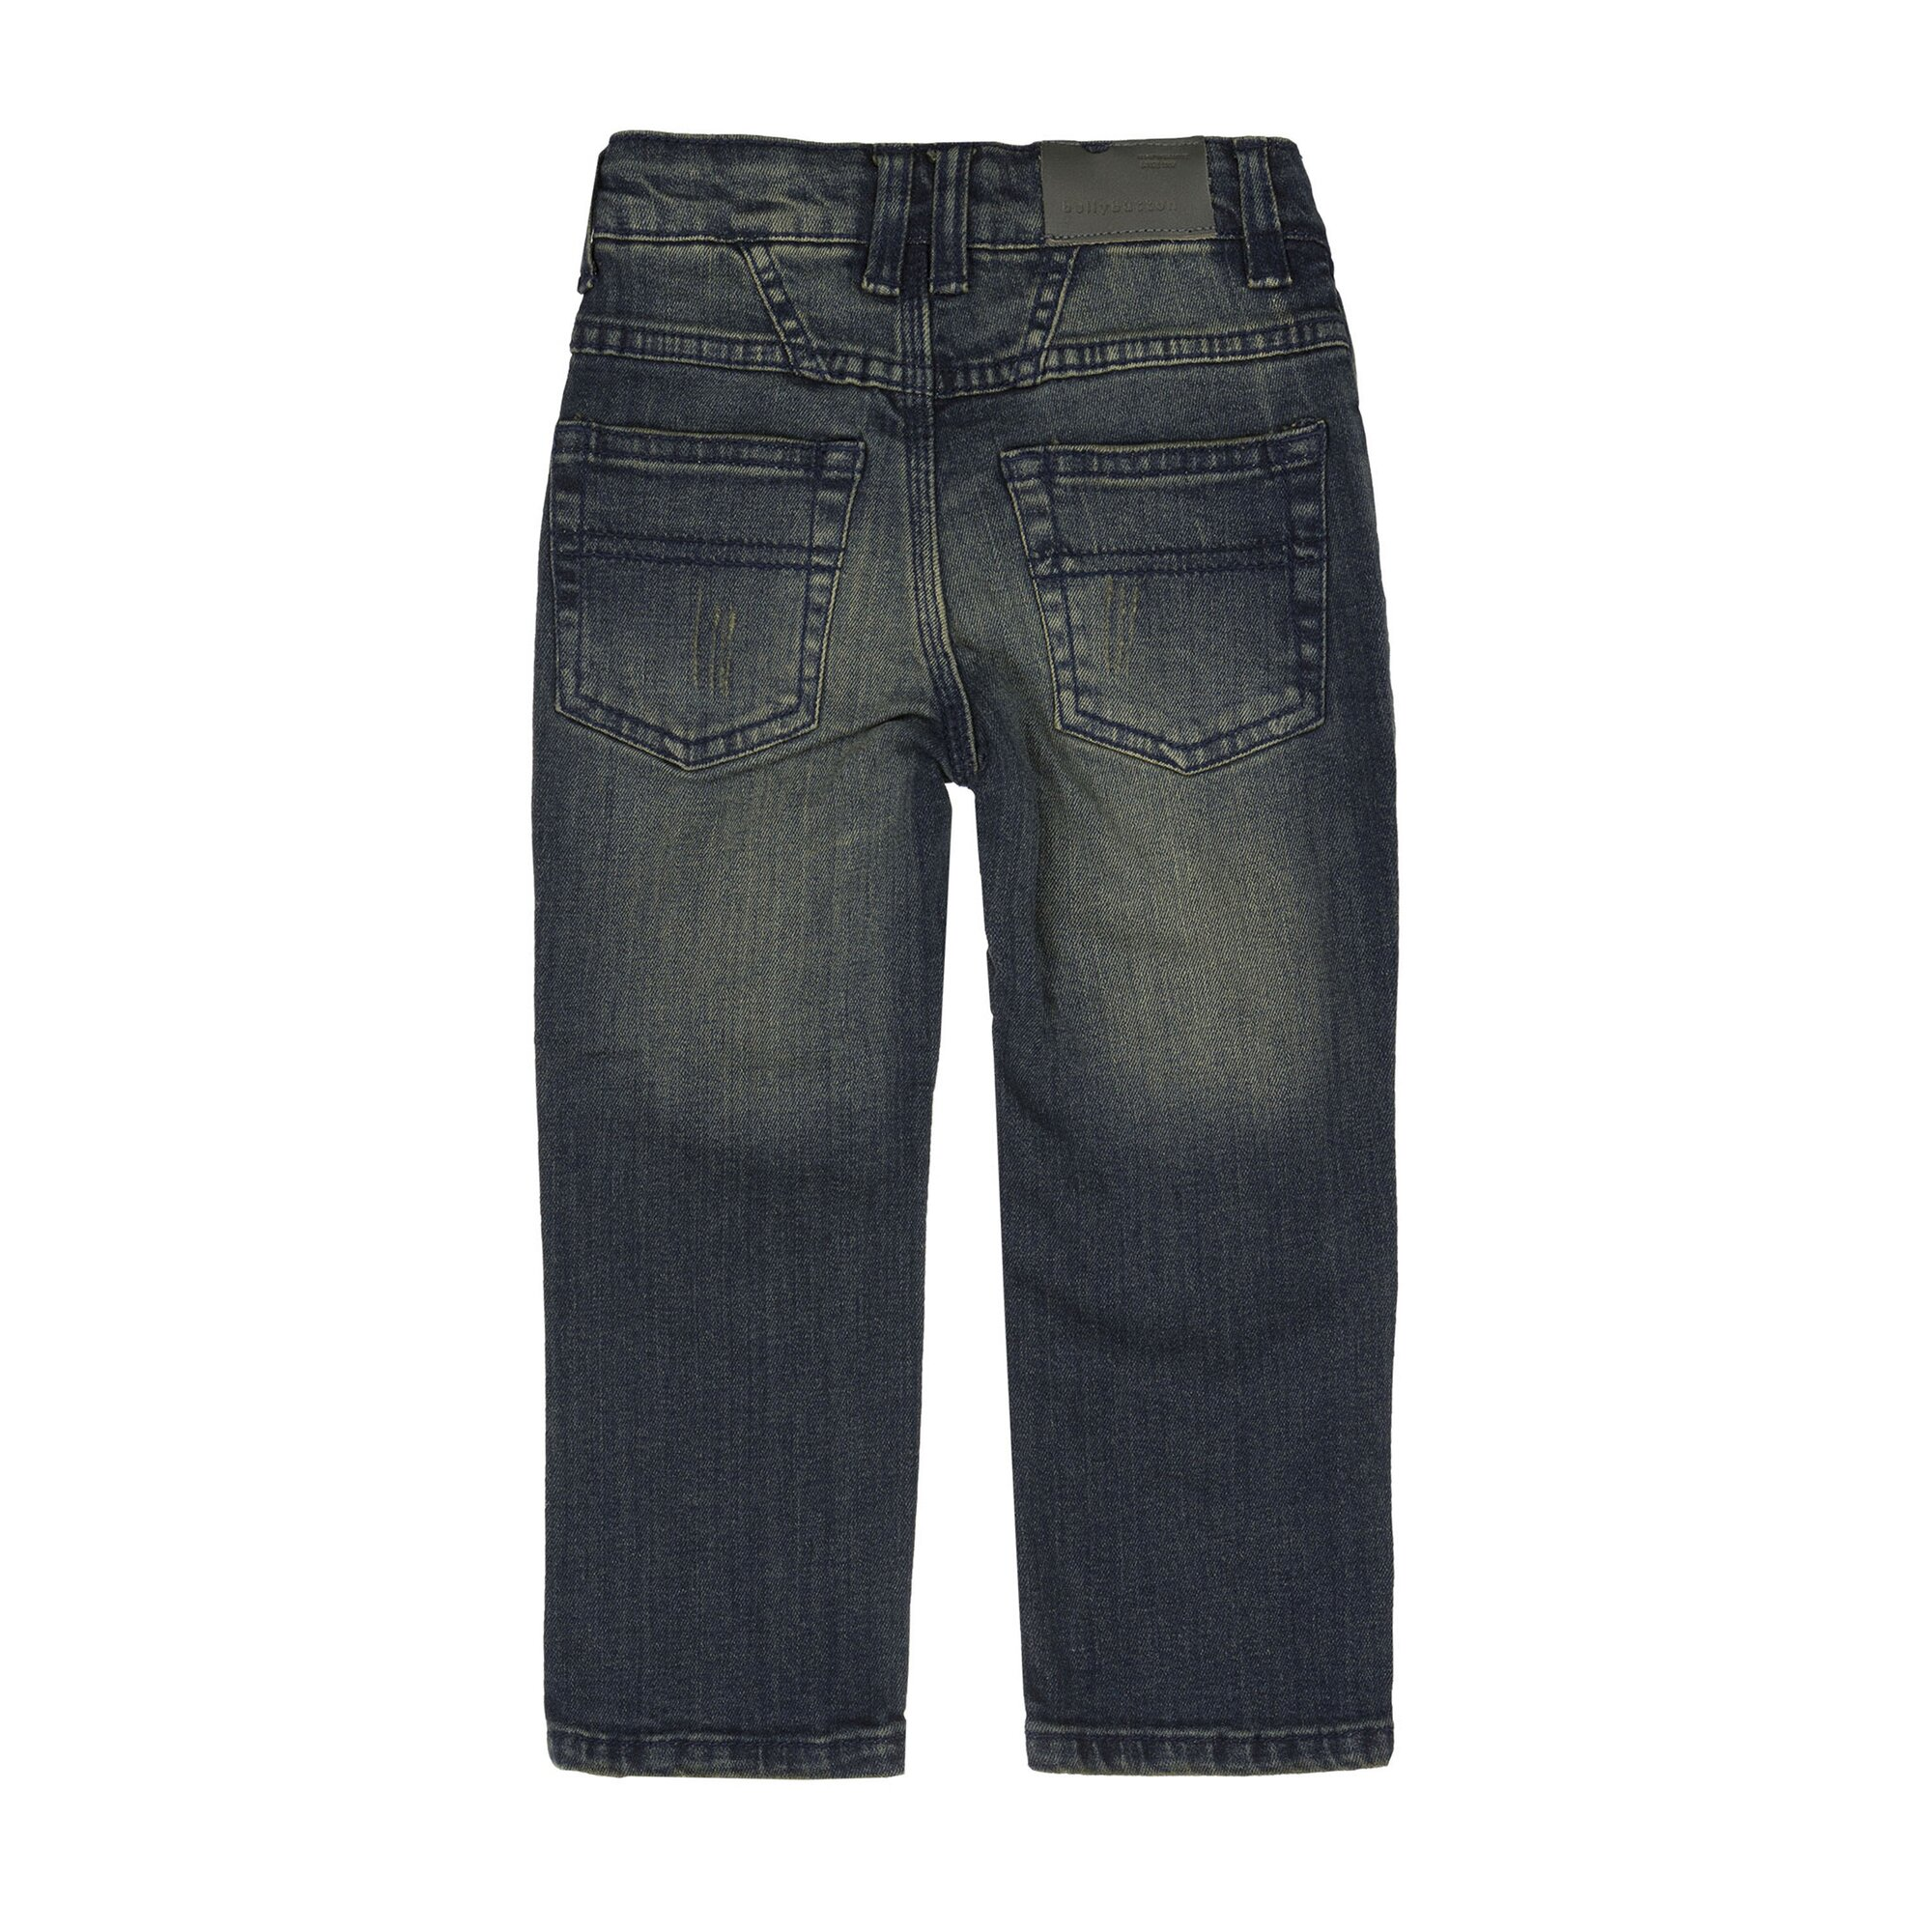 bellybutton-jeans-unisex-finishing-gr-68-128